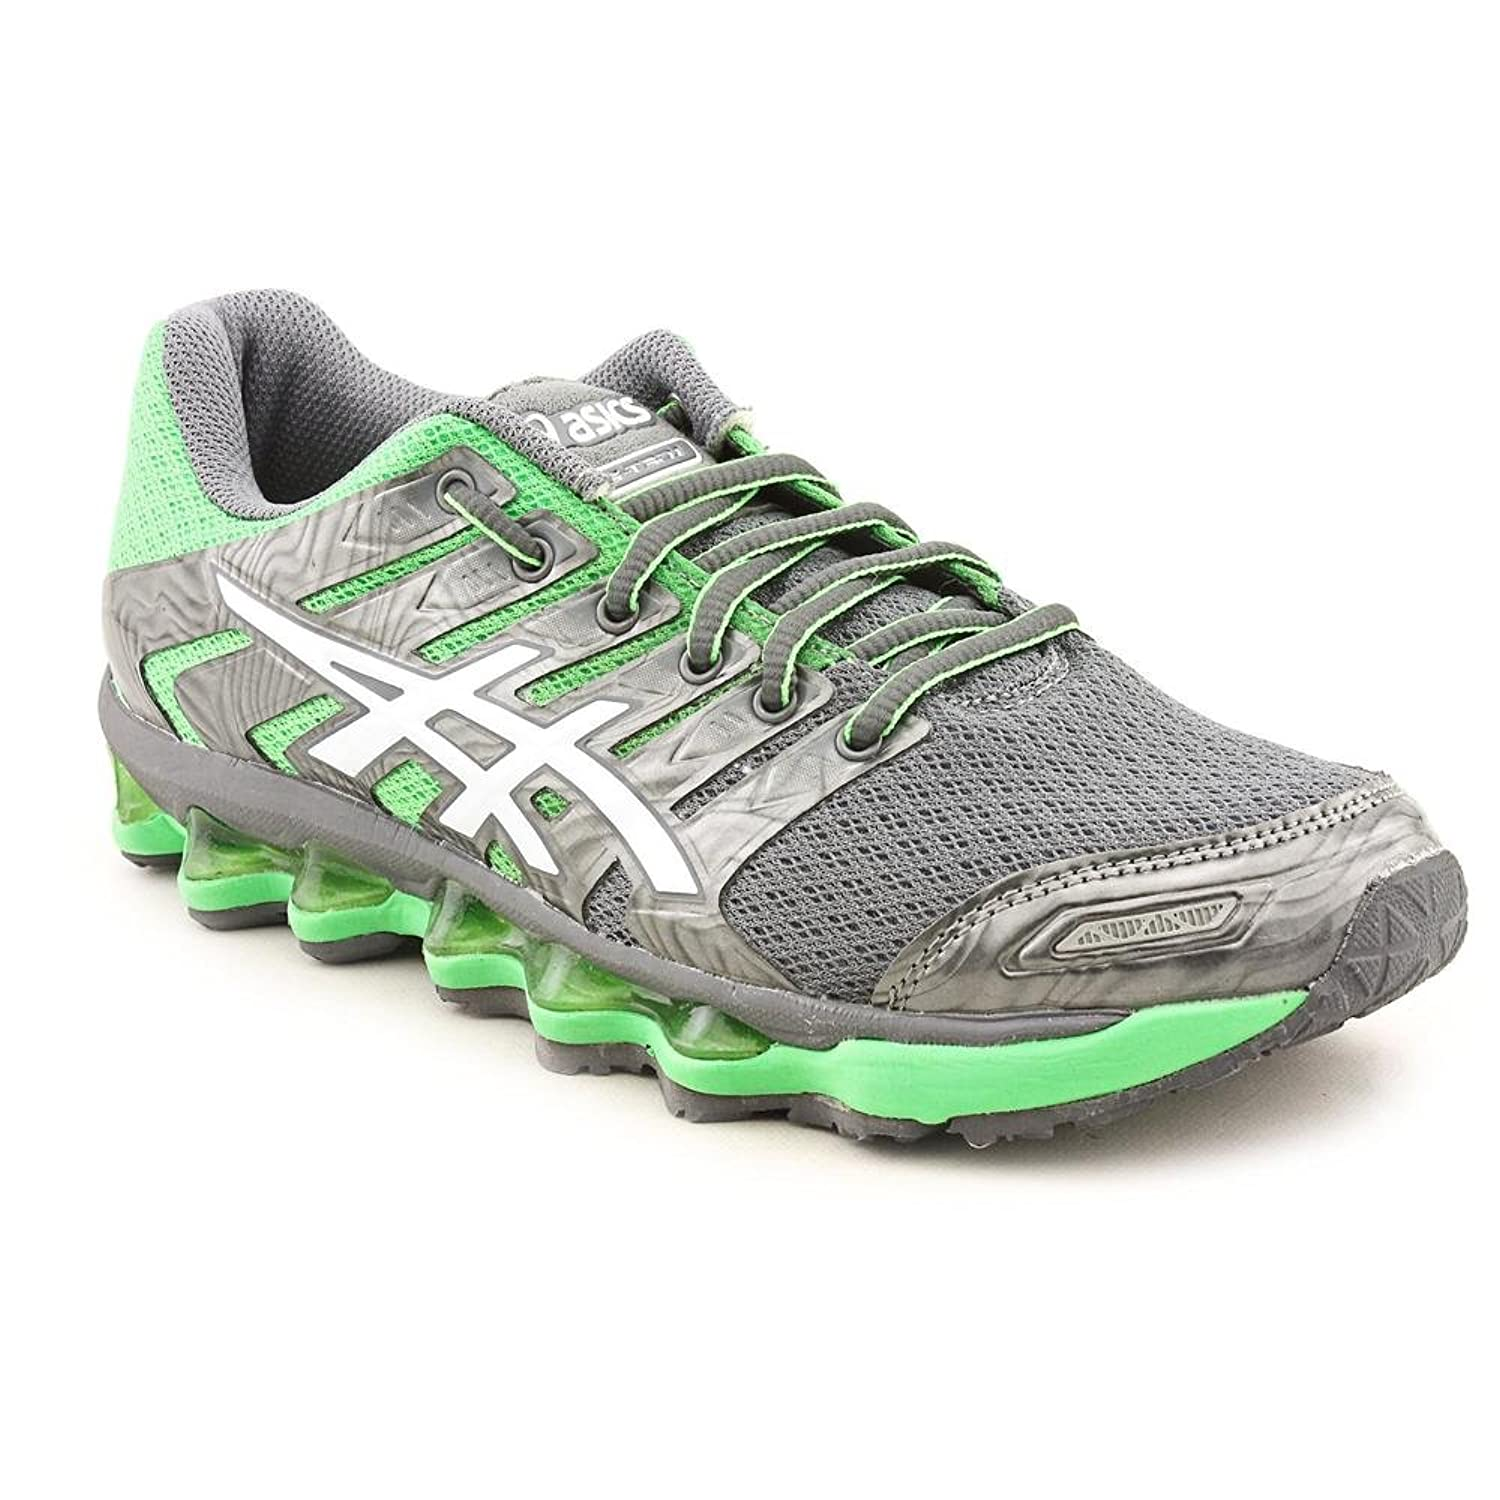 ASICS Women's G T3D 1 Running Shoes